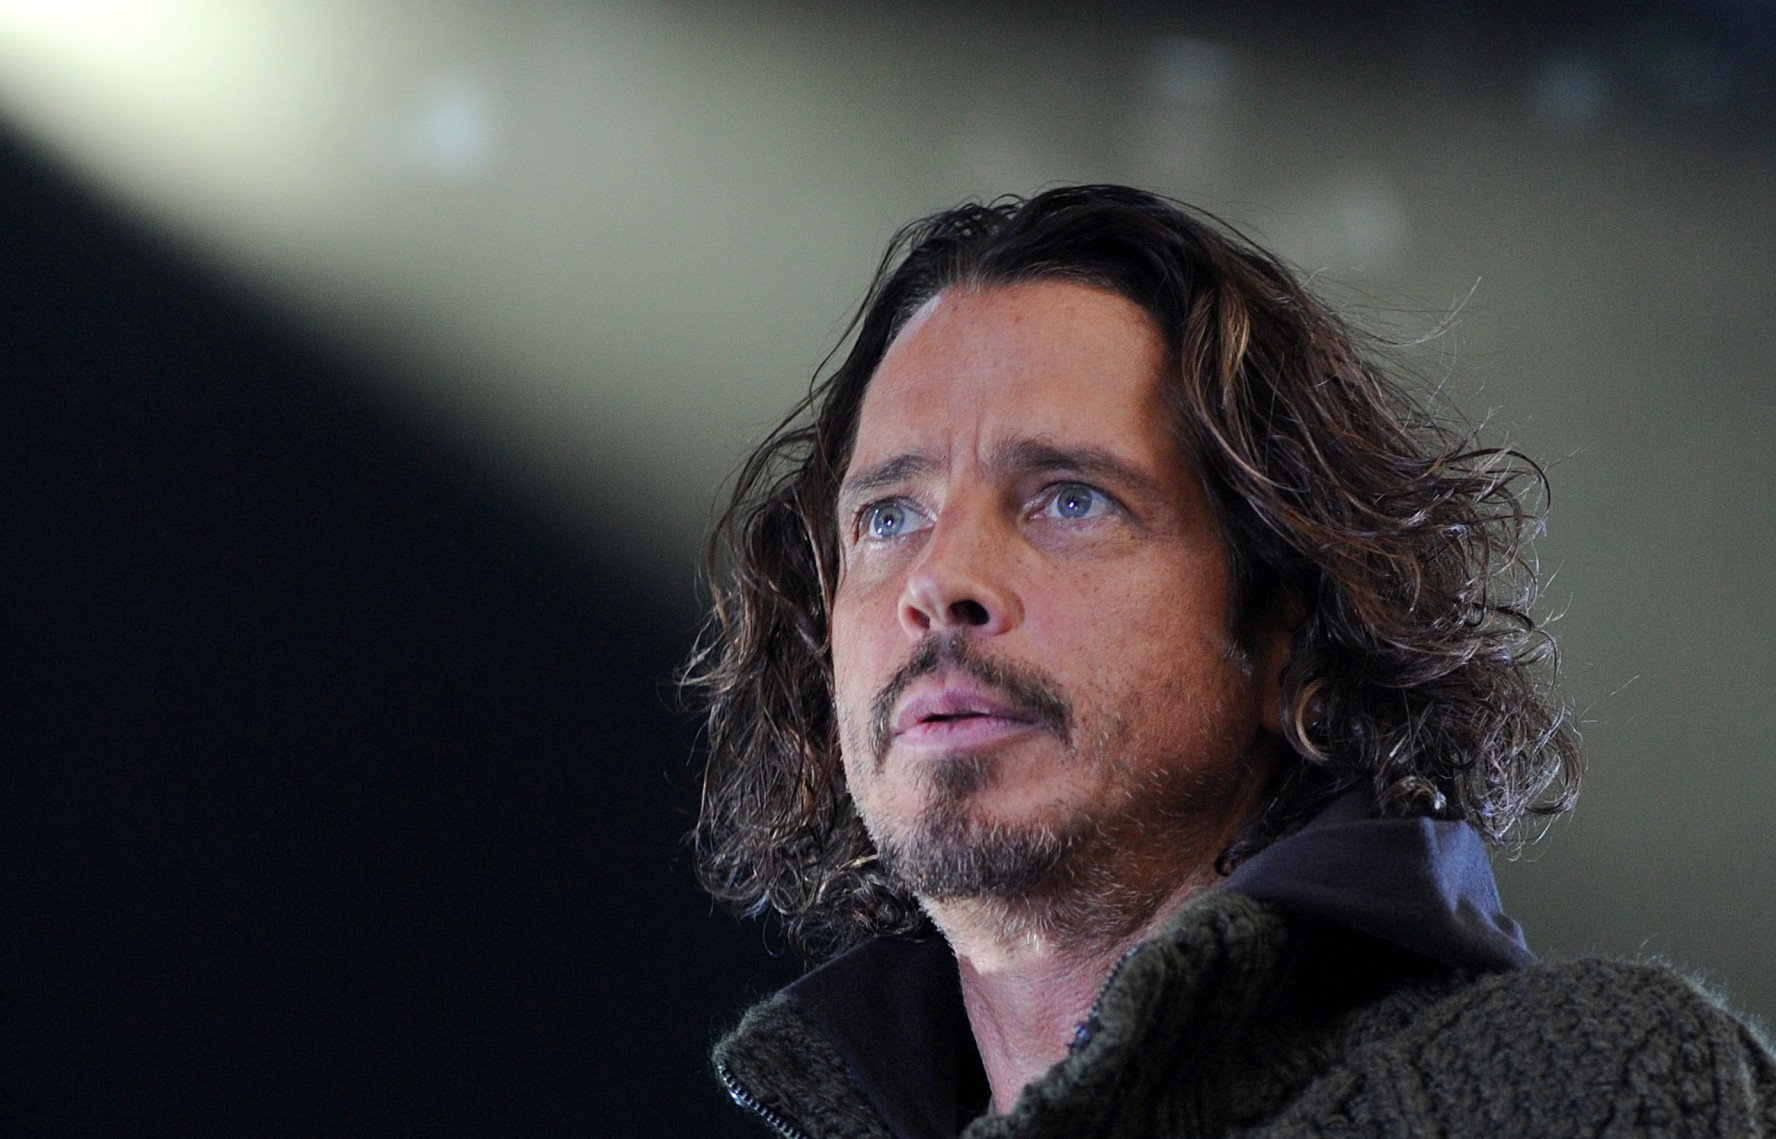 CHRIS CORNELL: la commovente lettera del fratello